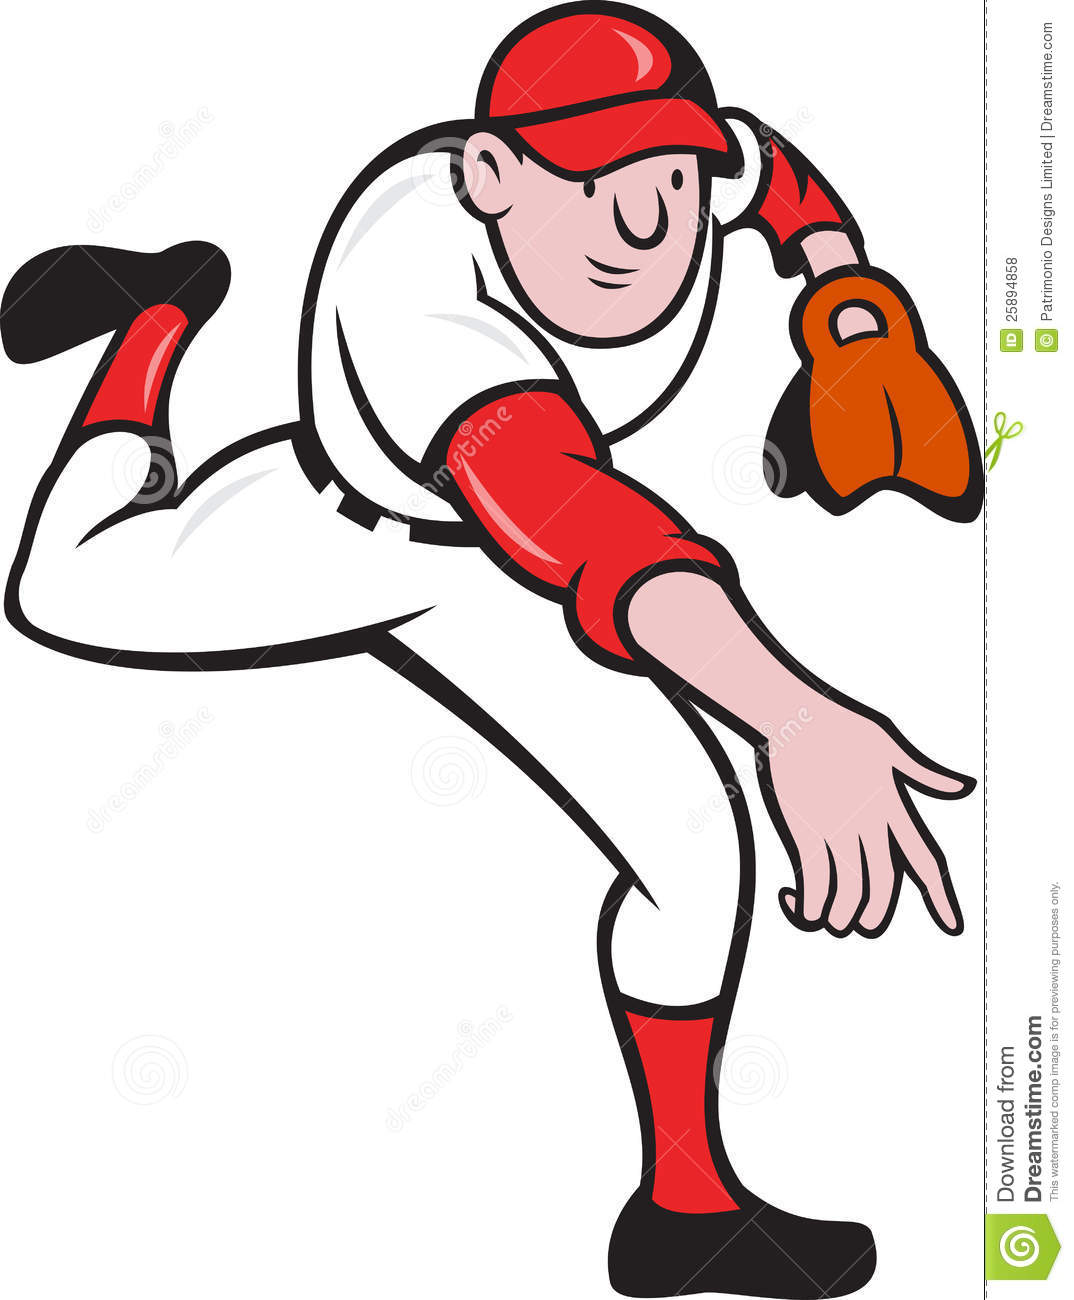 baseball player pitching clipart clipart panda free clipart images rh clipartpanda com basketball player clipart images basketball player clipart images